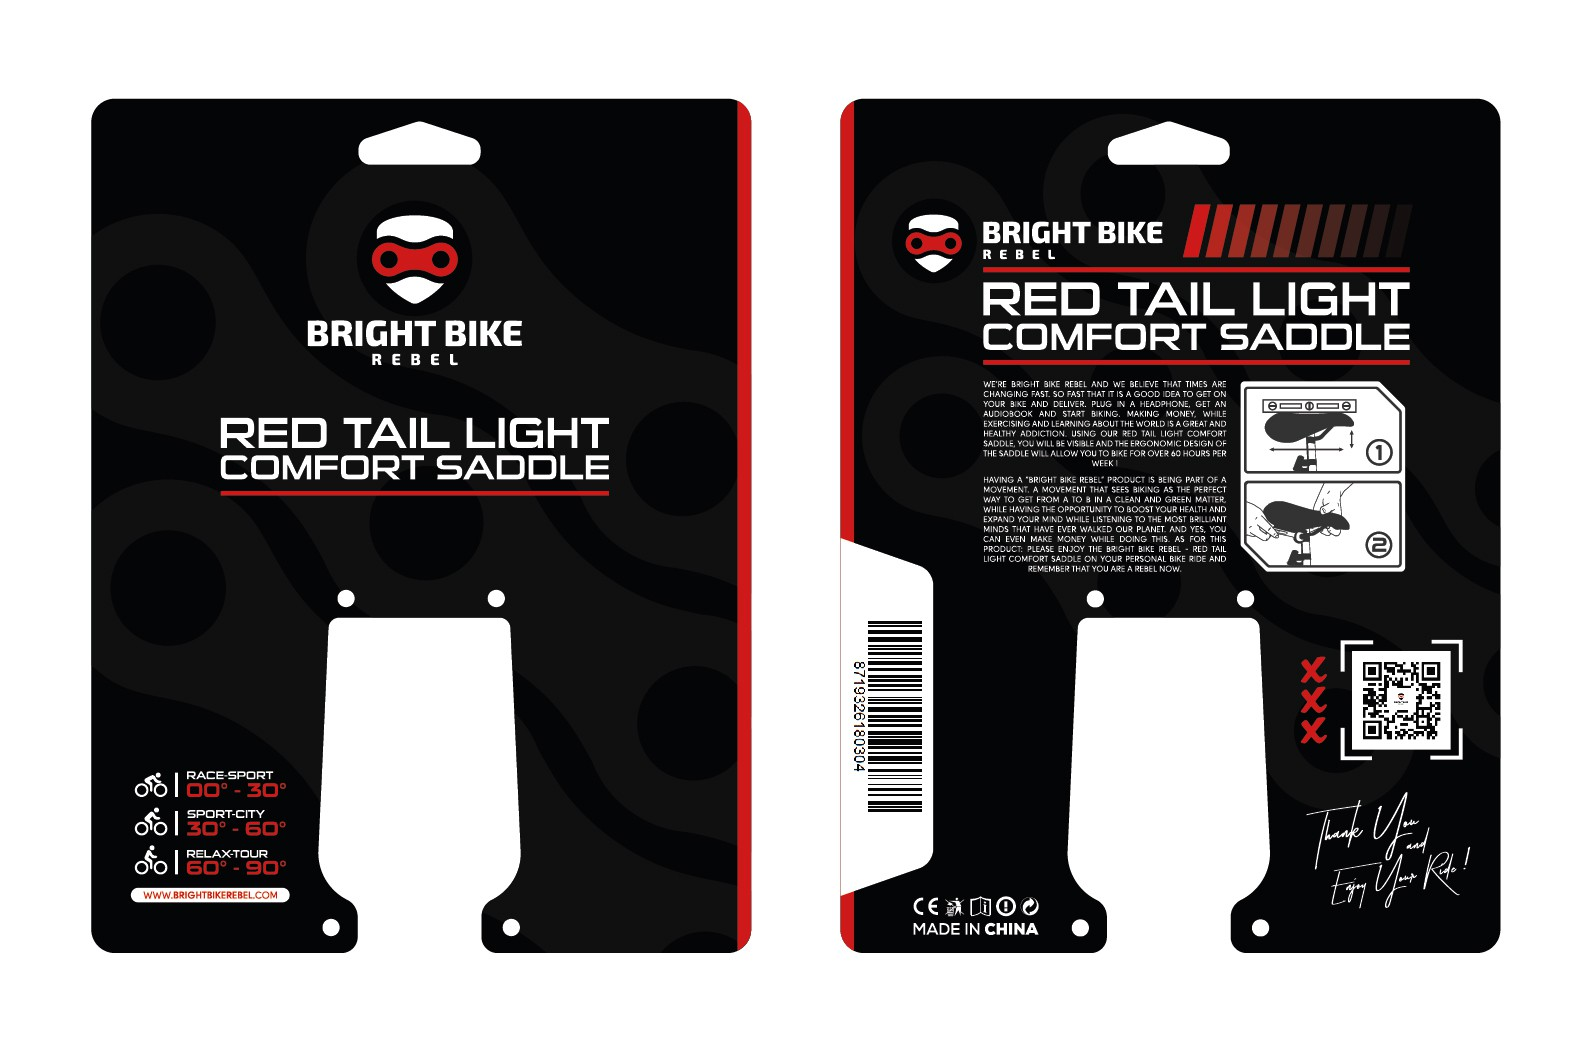 Design a packaging for the Bright Bike Rebel - Red Tail Light Comfort Saddle